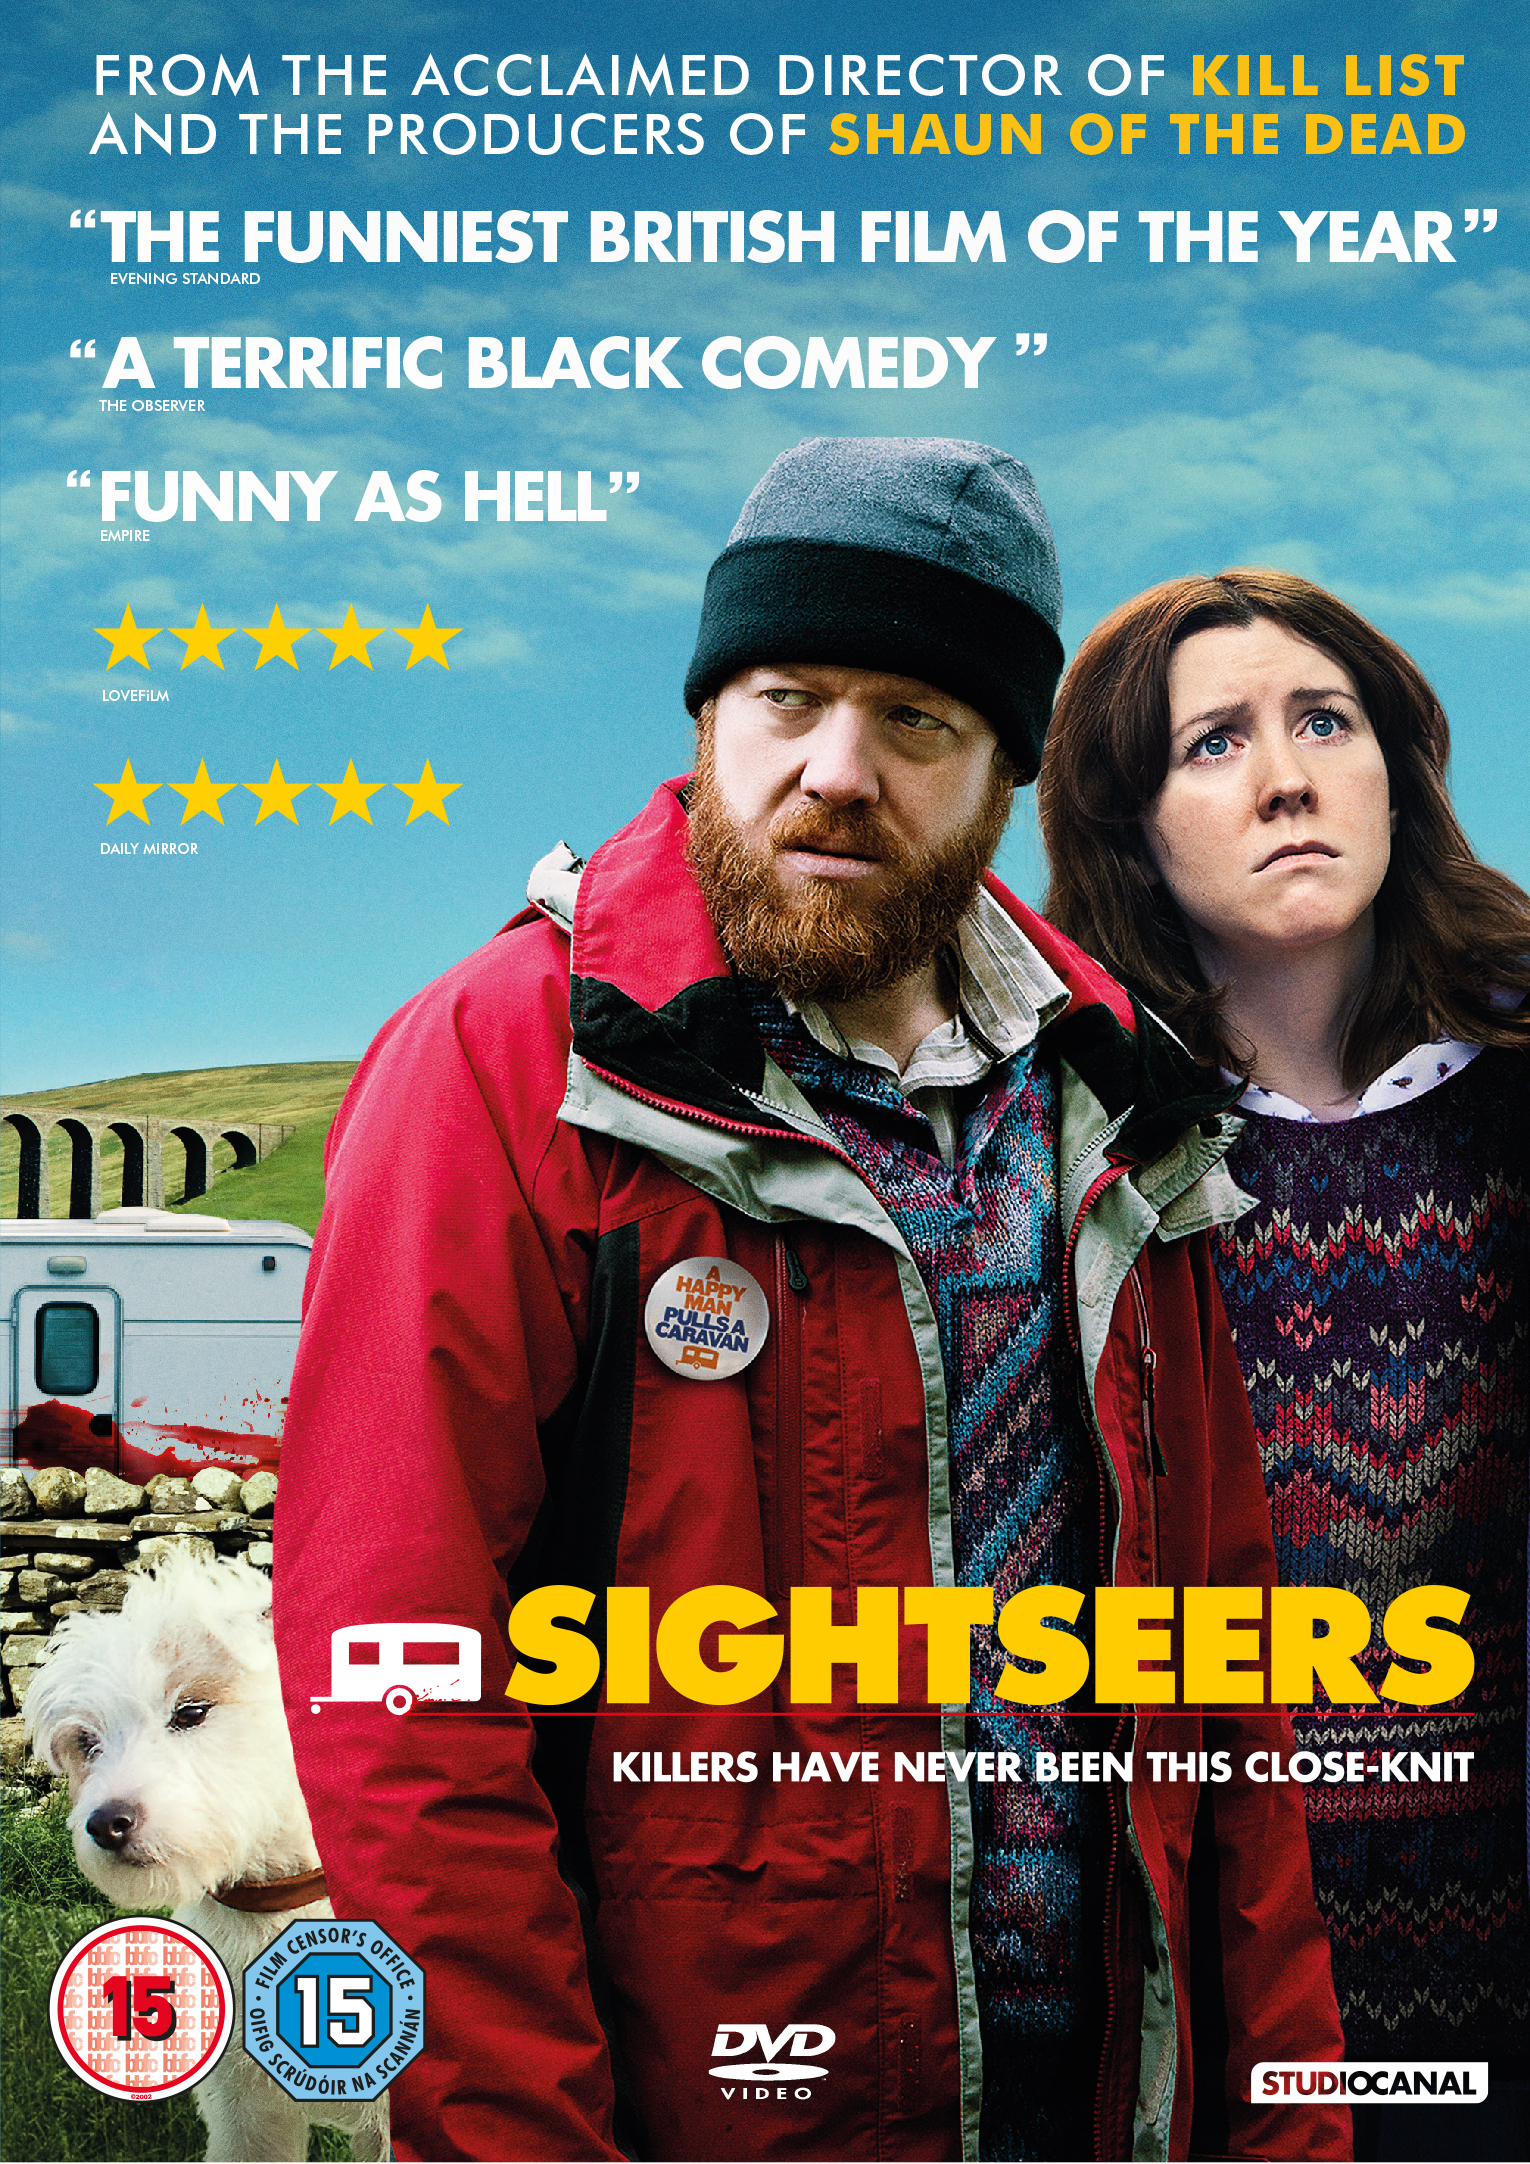 <b>Sightseers out on DV...</b>